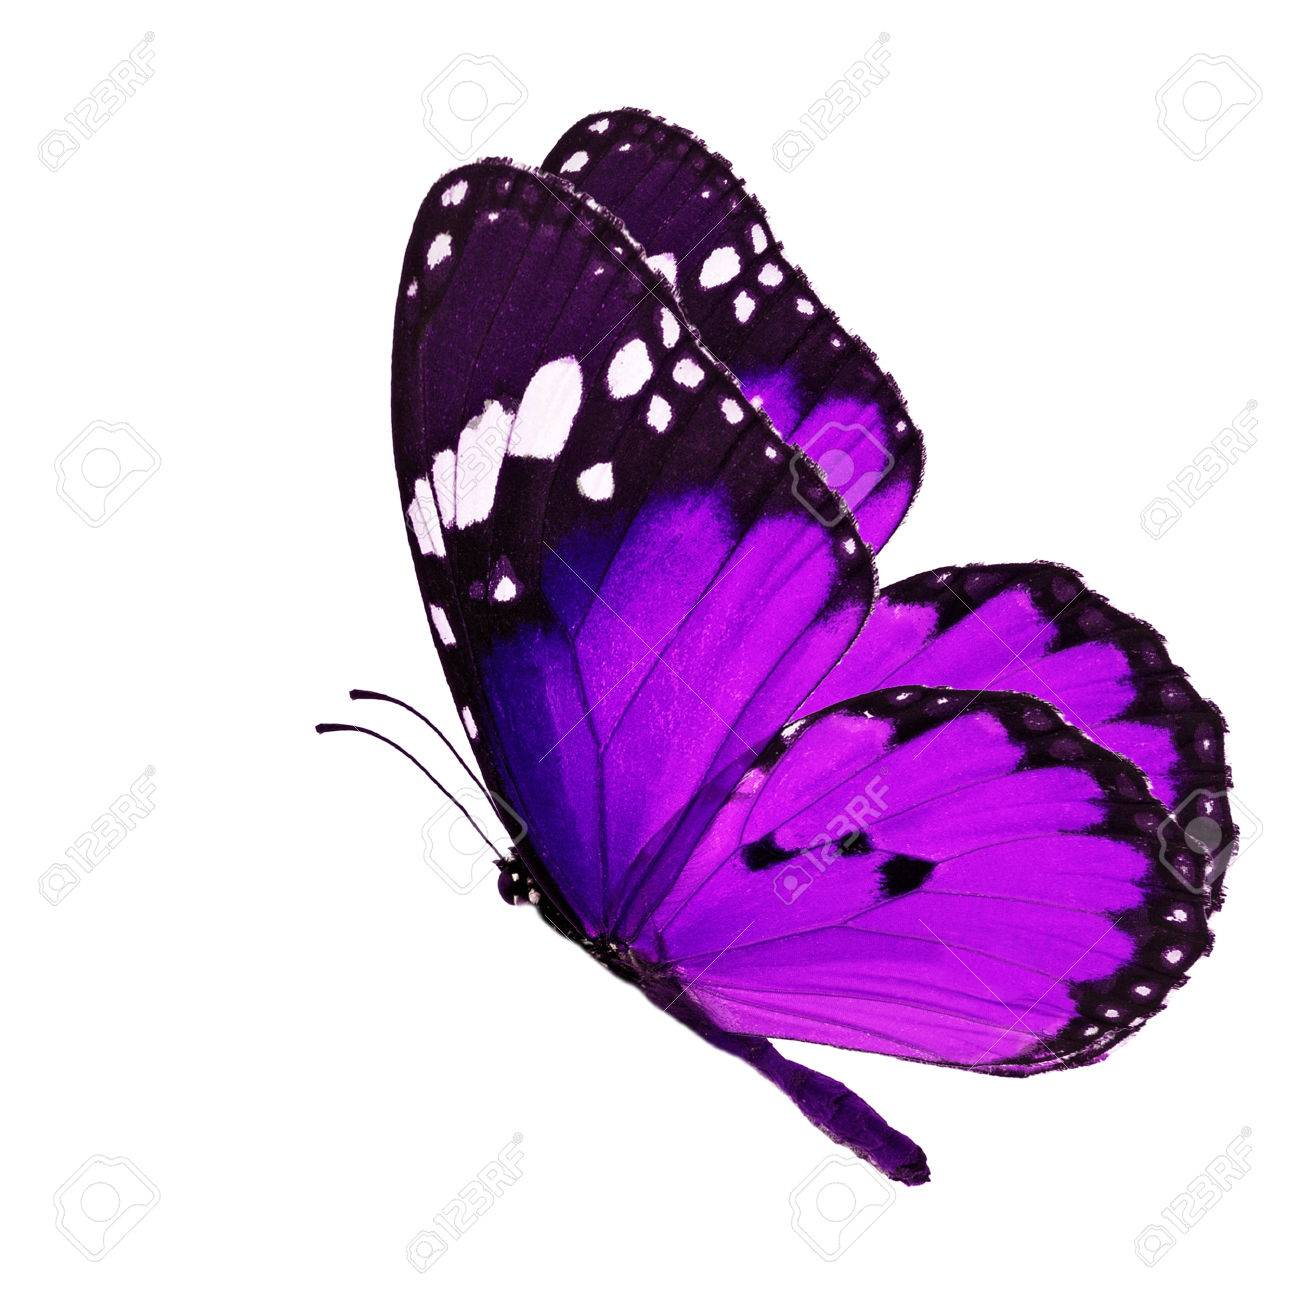 Beautiful purple butterfly flying isolated on white background - 34559017